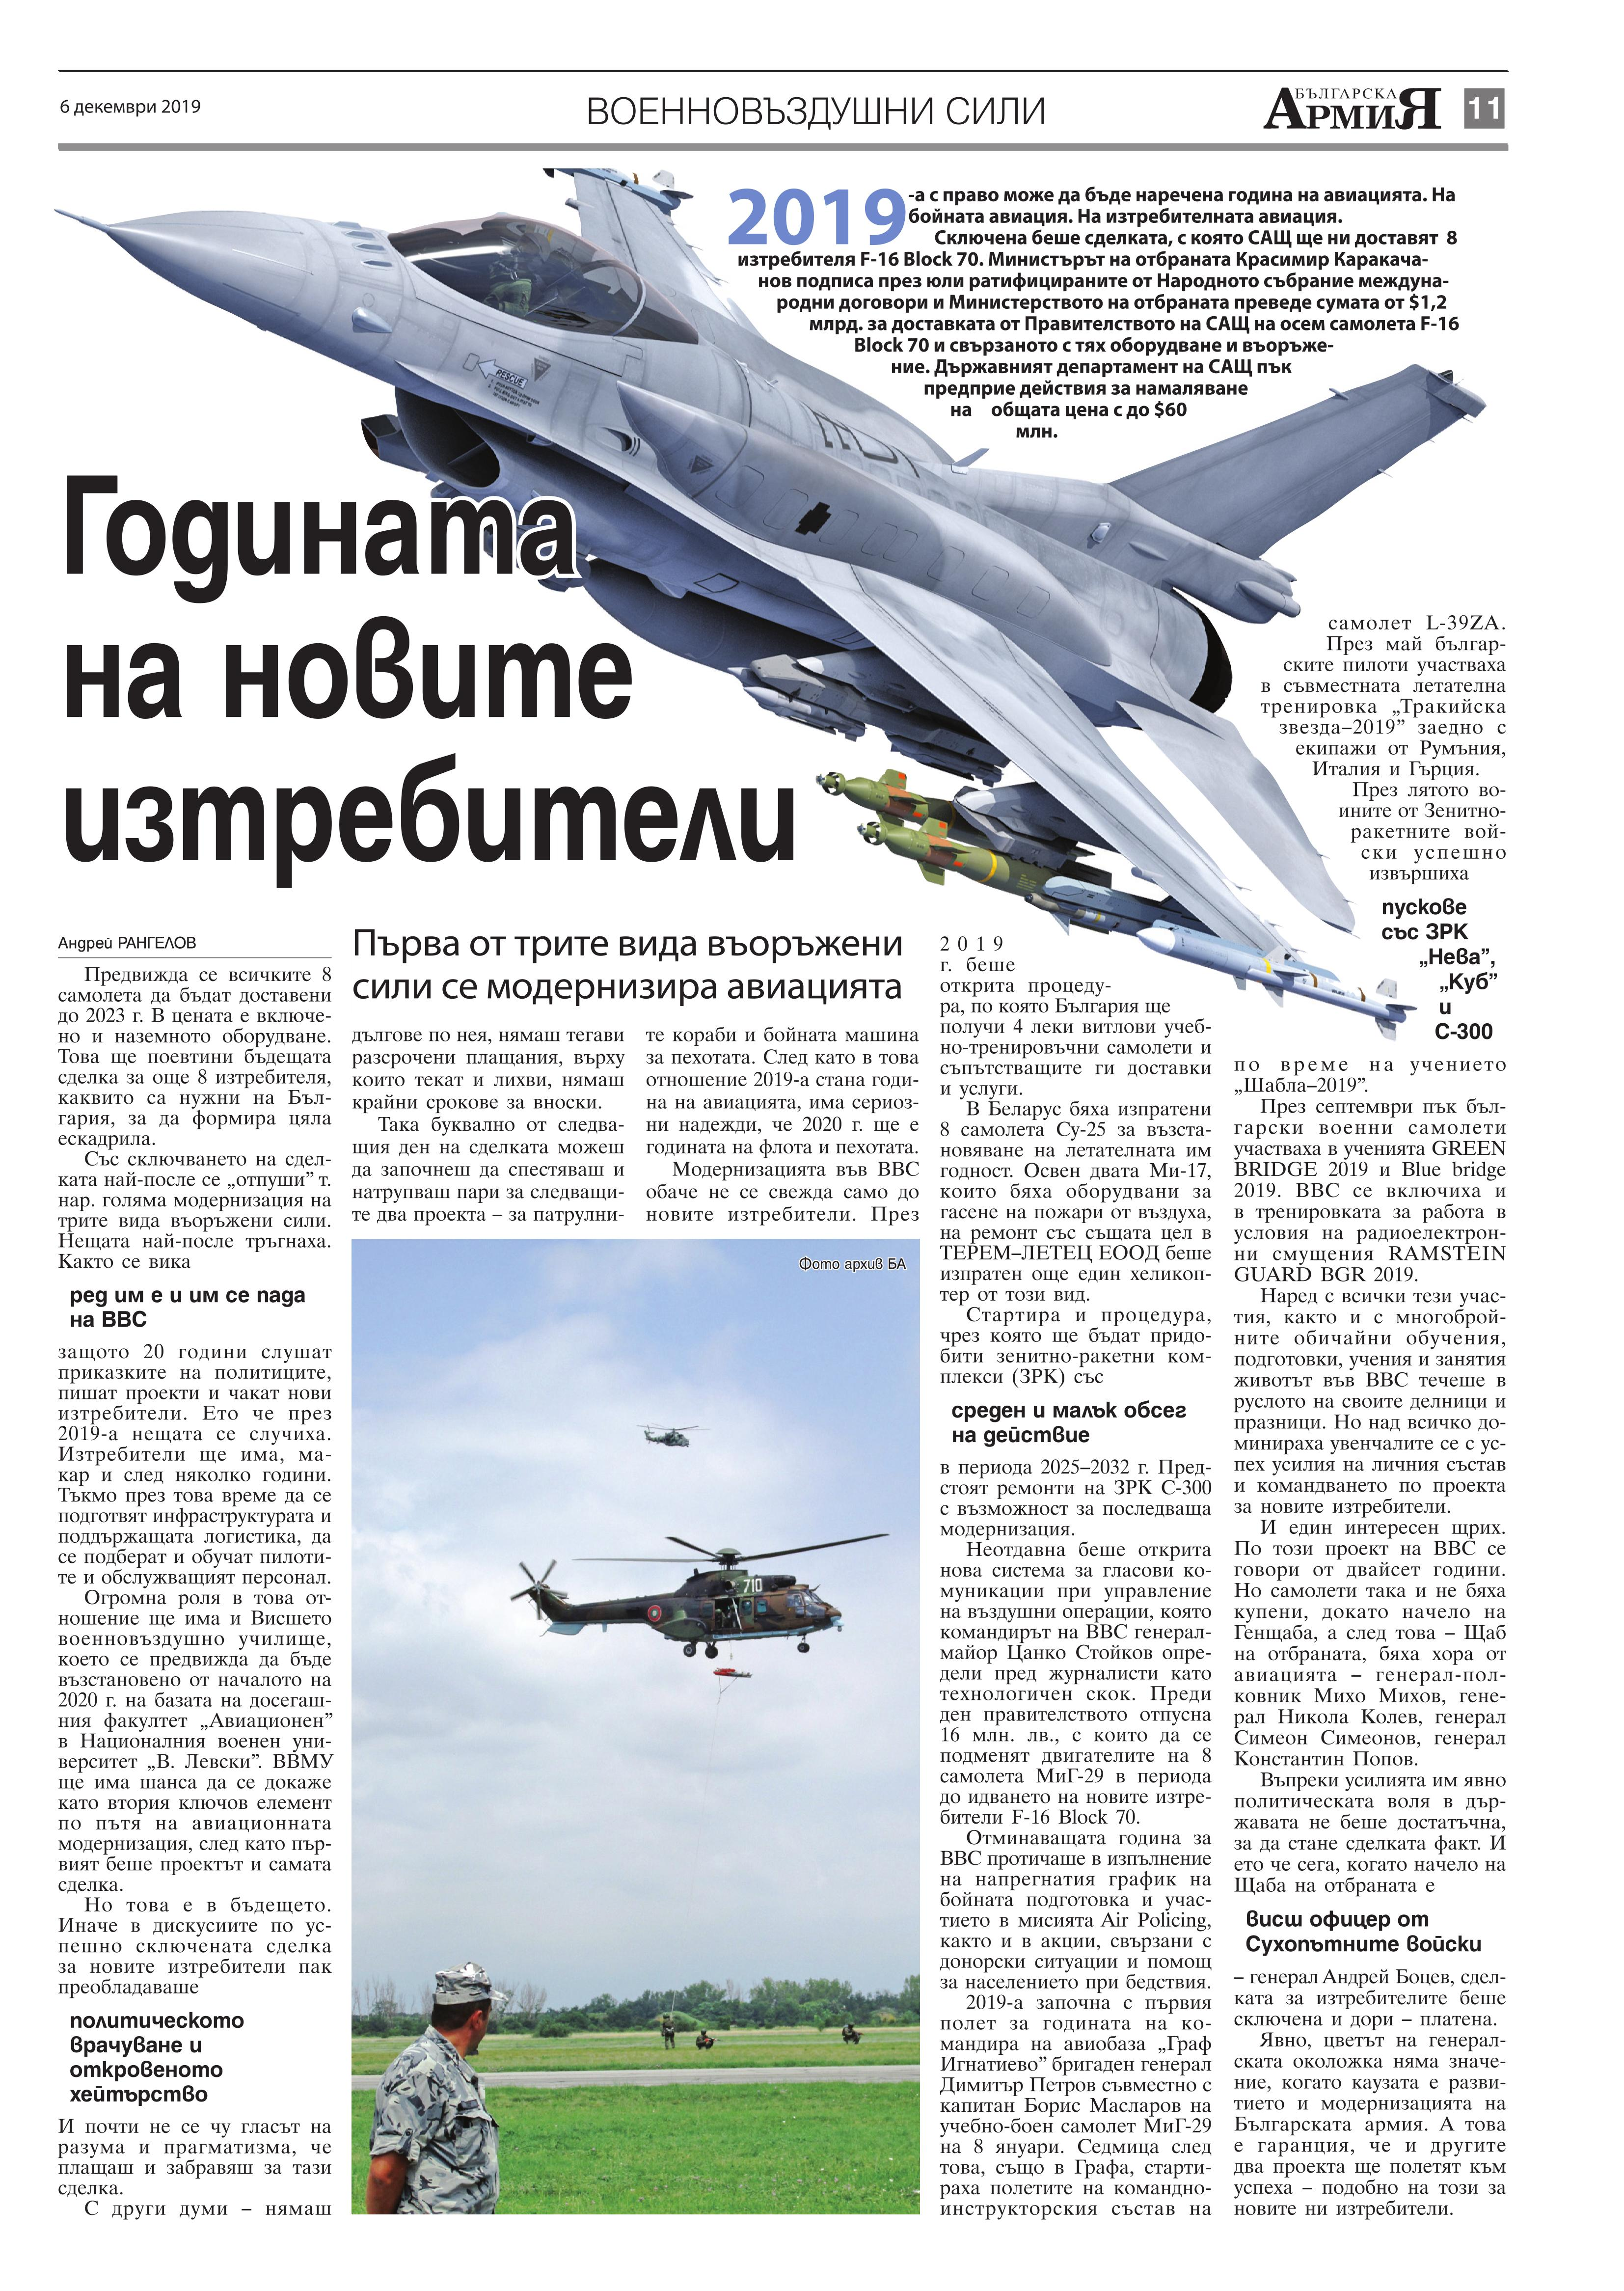 https://armymedia.bg/wp-content/uploads/2015/06/11.page1_-118.jpg